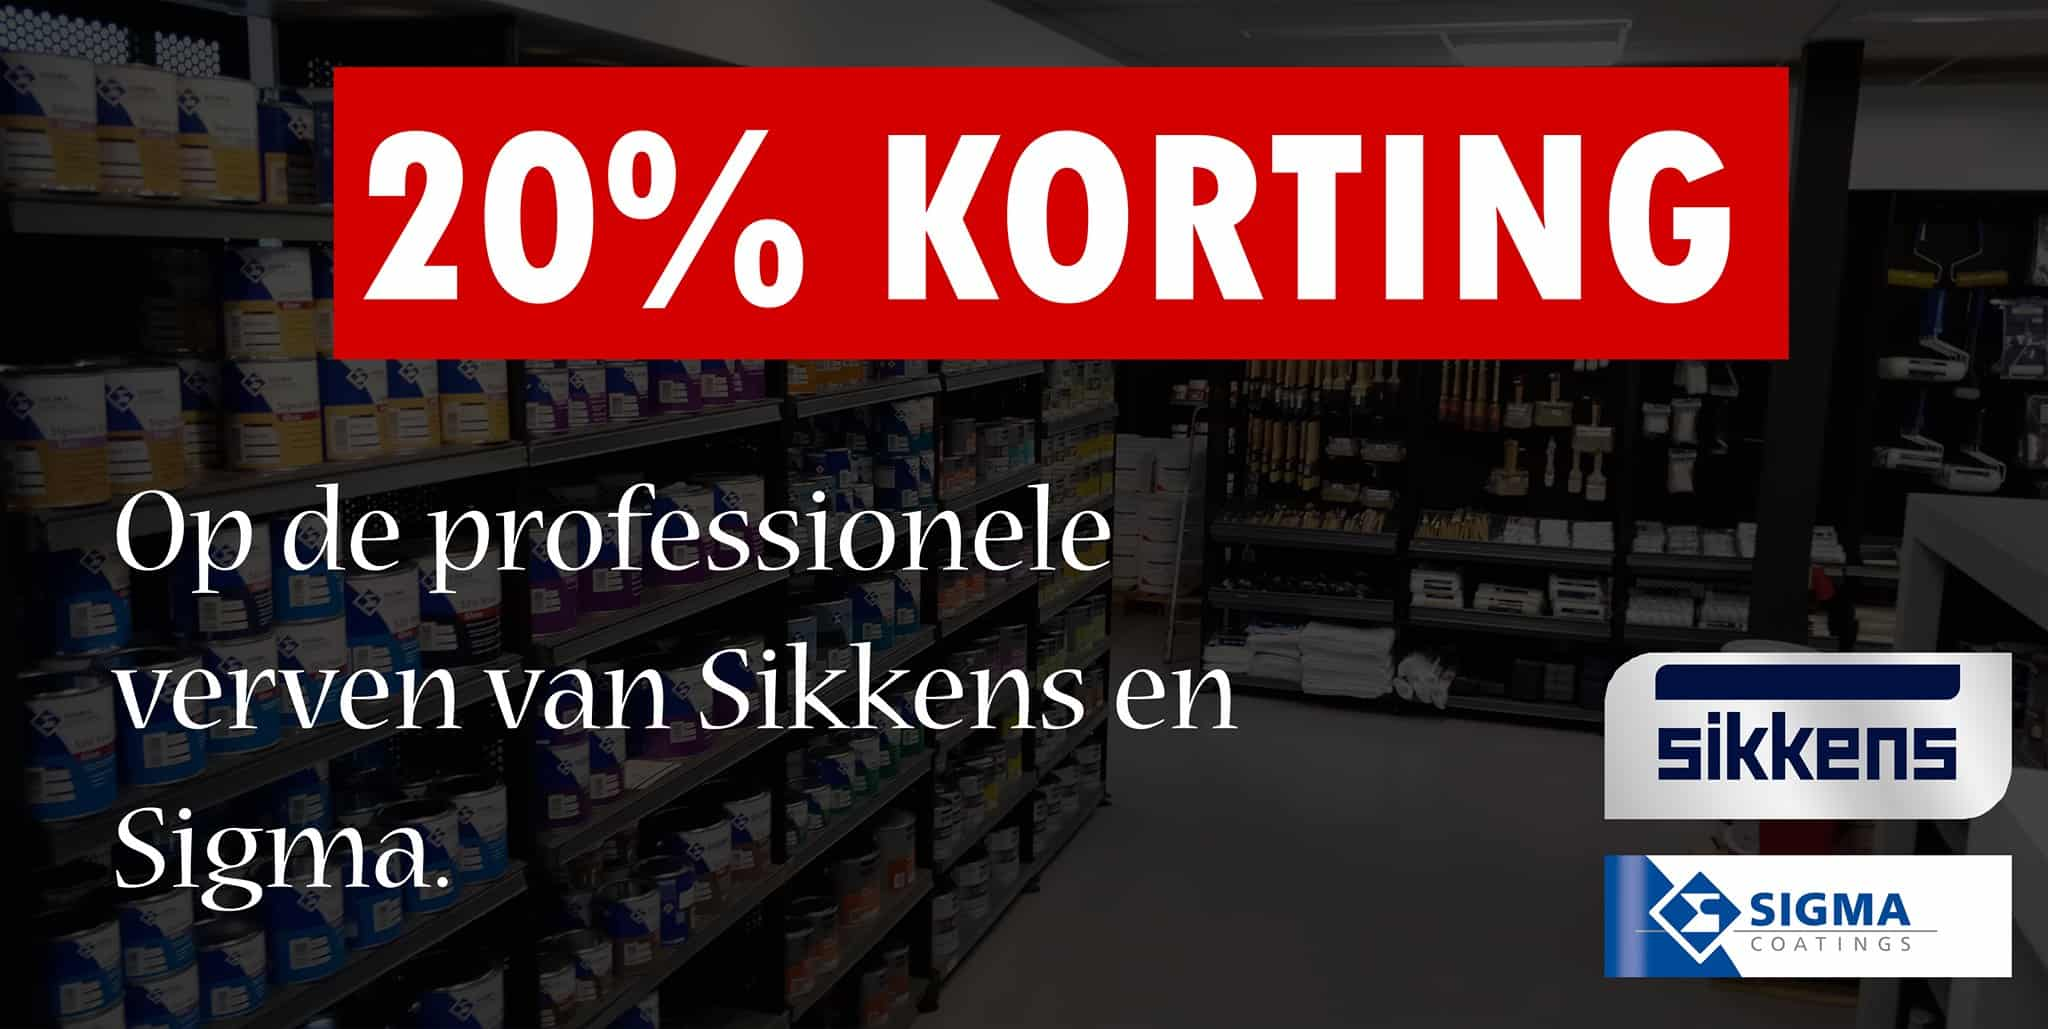 20% Korting Sikkens Sigma